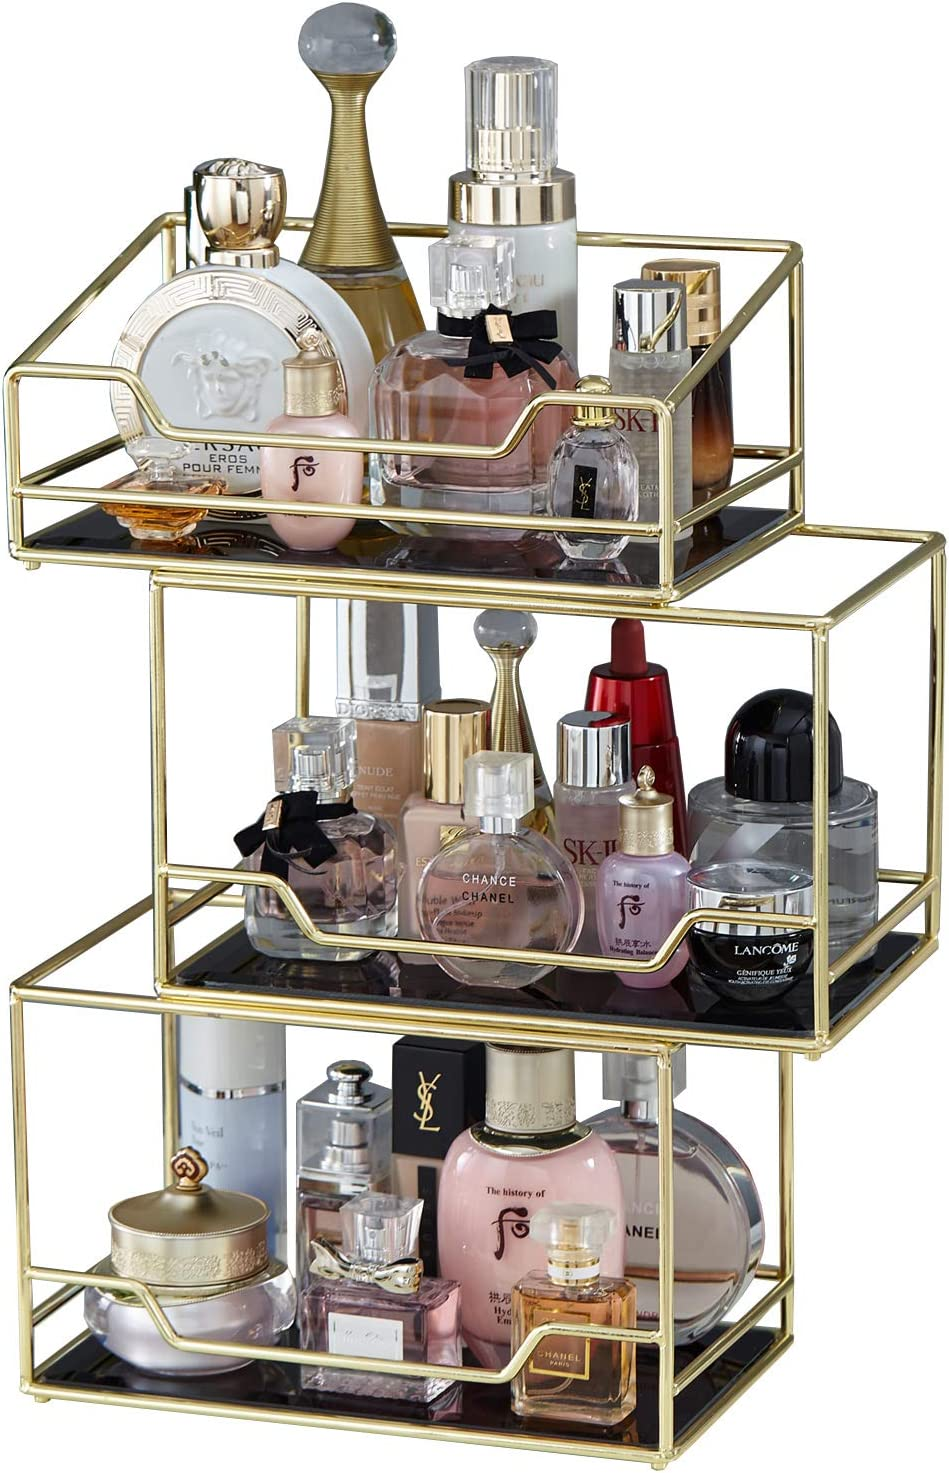 Amazon Com Spacious 3layer Stackable Glass Perfume Tray 3 Tirer Gold Black Mirror Metal Bathroom Tray For Makeup Jewelry Organizer Ornate Decorative Tray For Vanity Desser Countertop Kitchen Home Kitchen